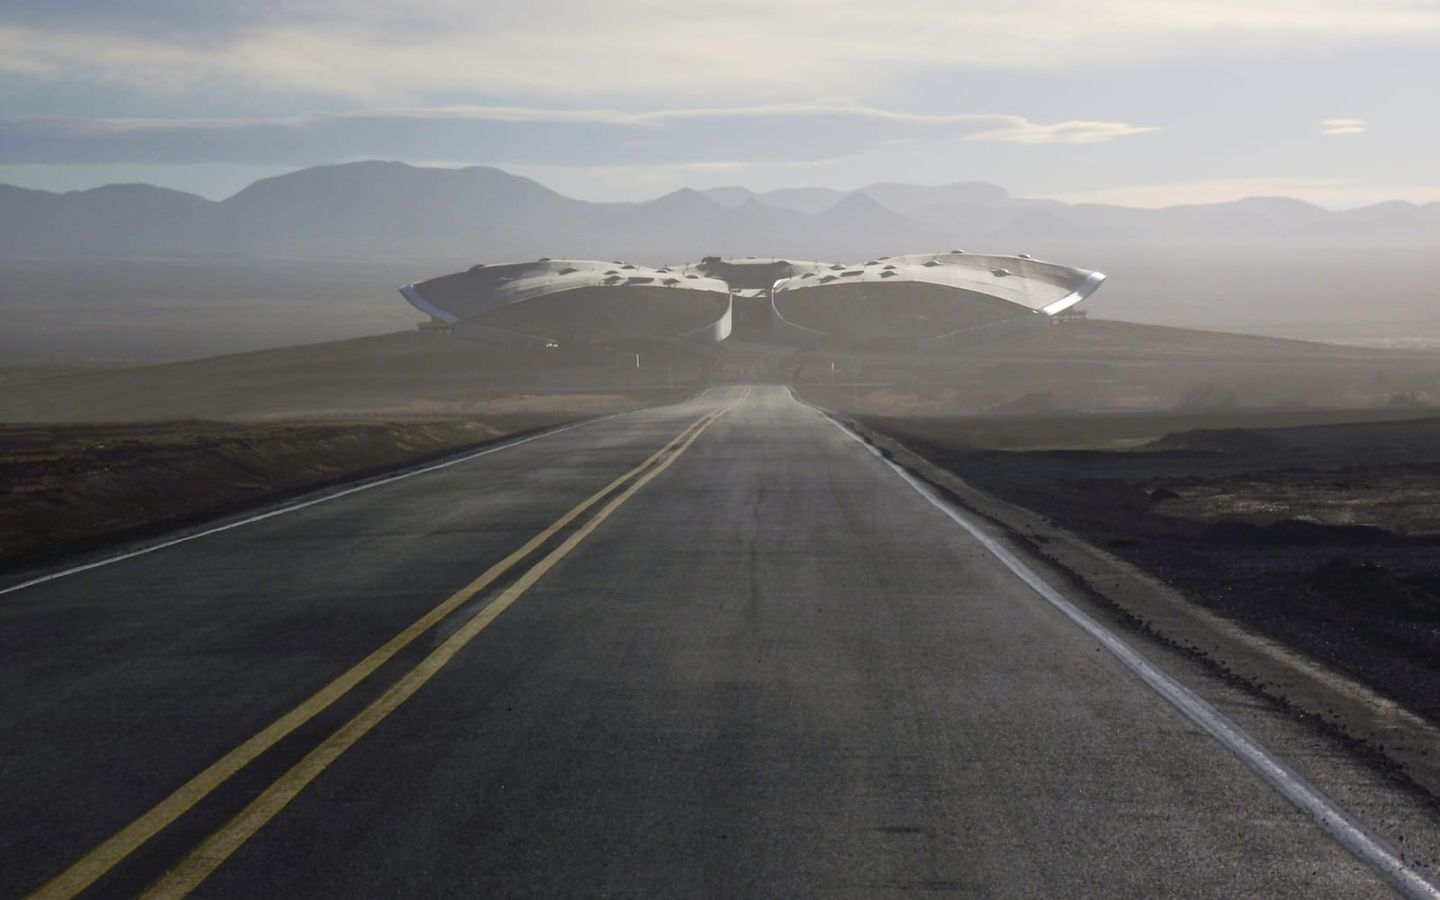 View of Spaceport America from down the runway